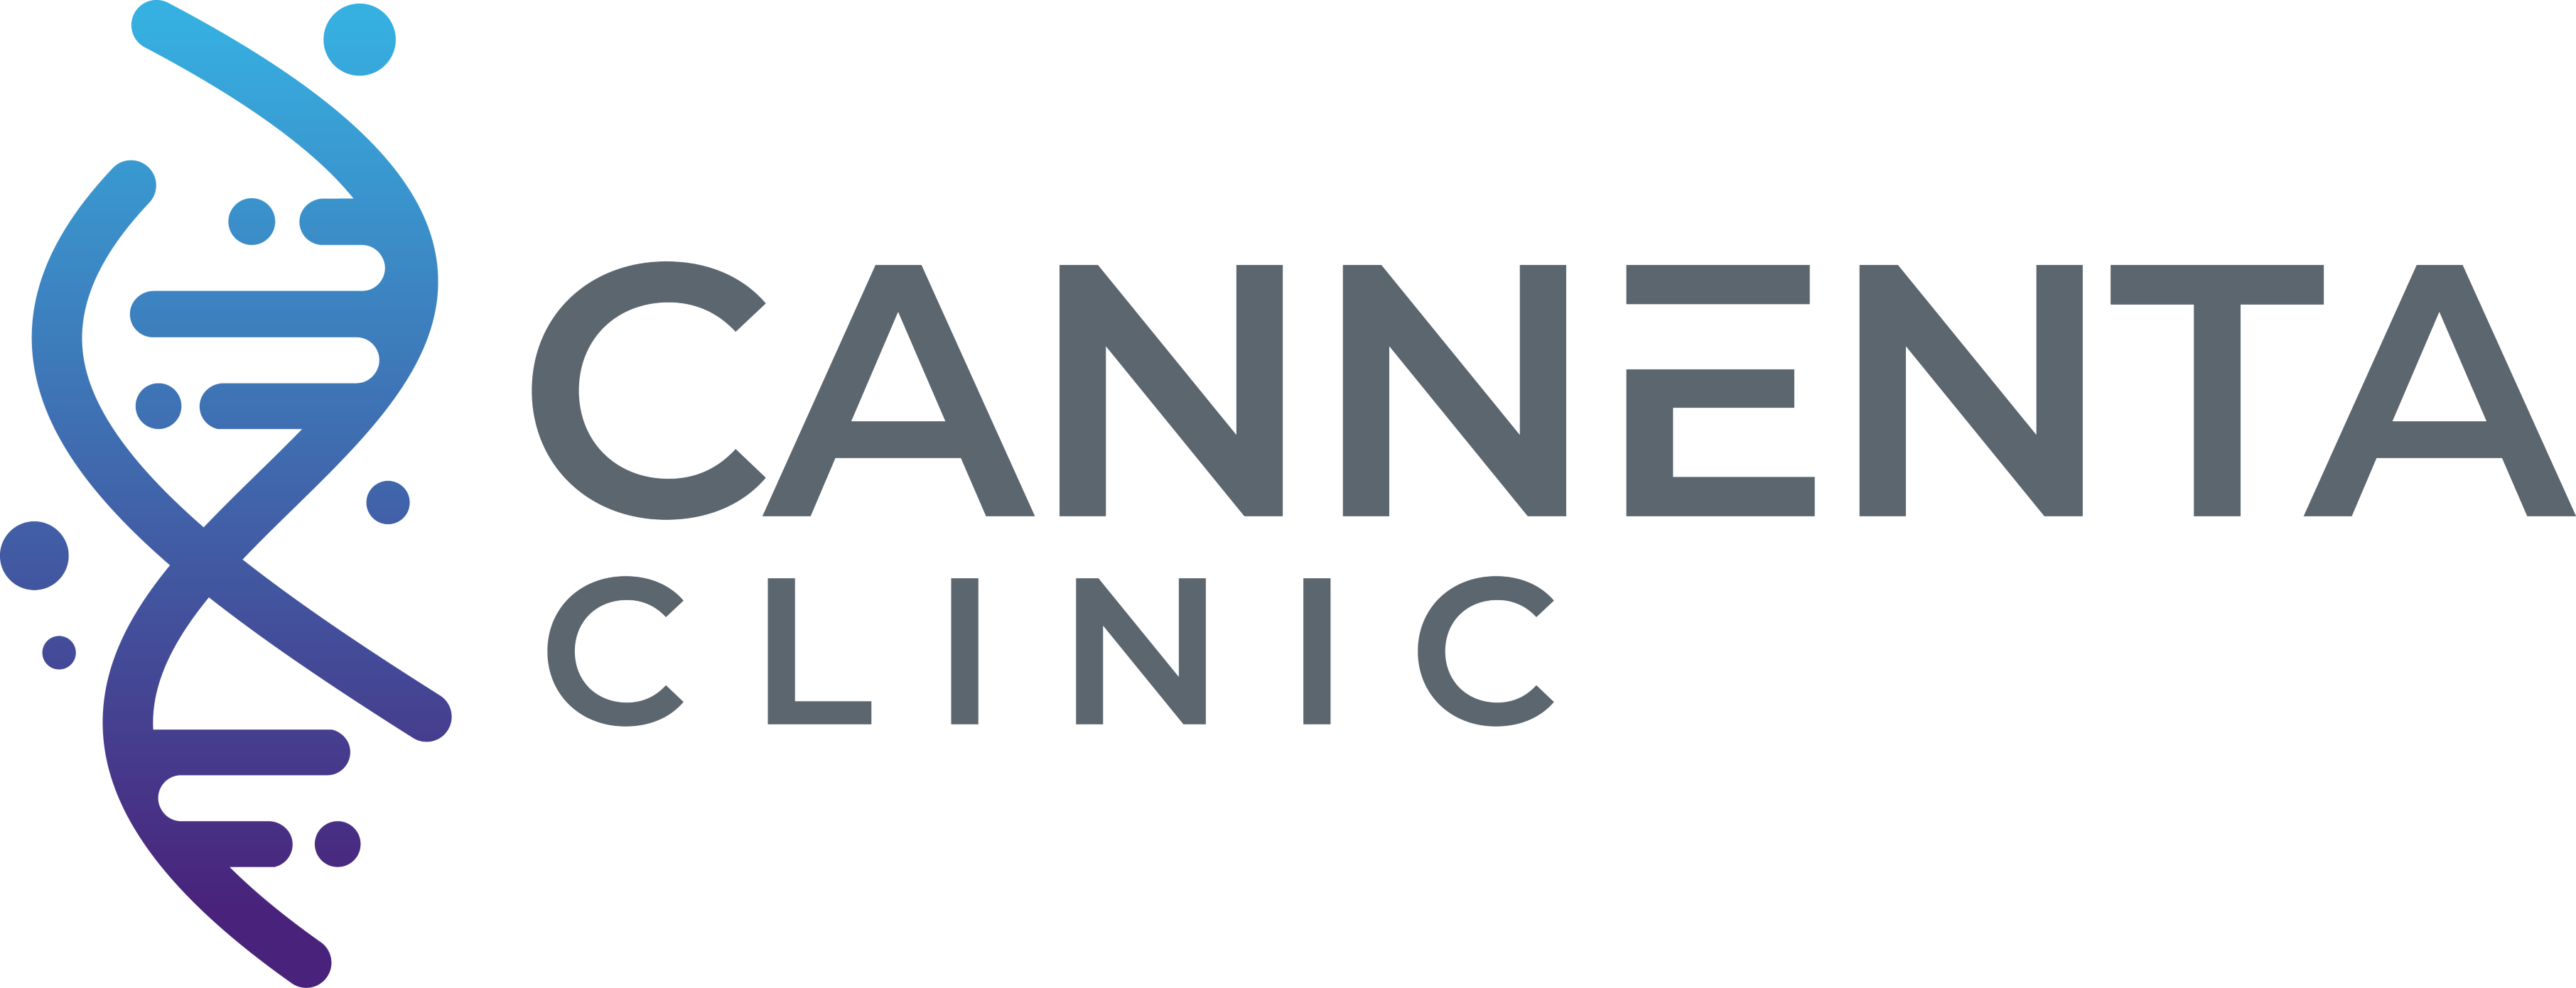 Cannenta Clinic logo, part of the Ausabis group.